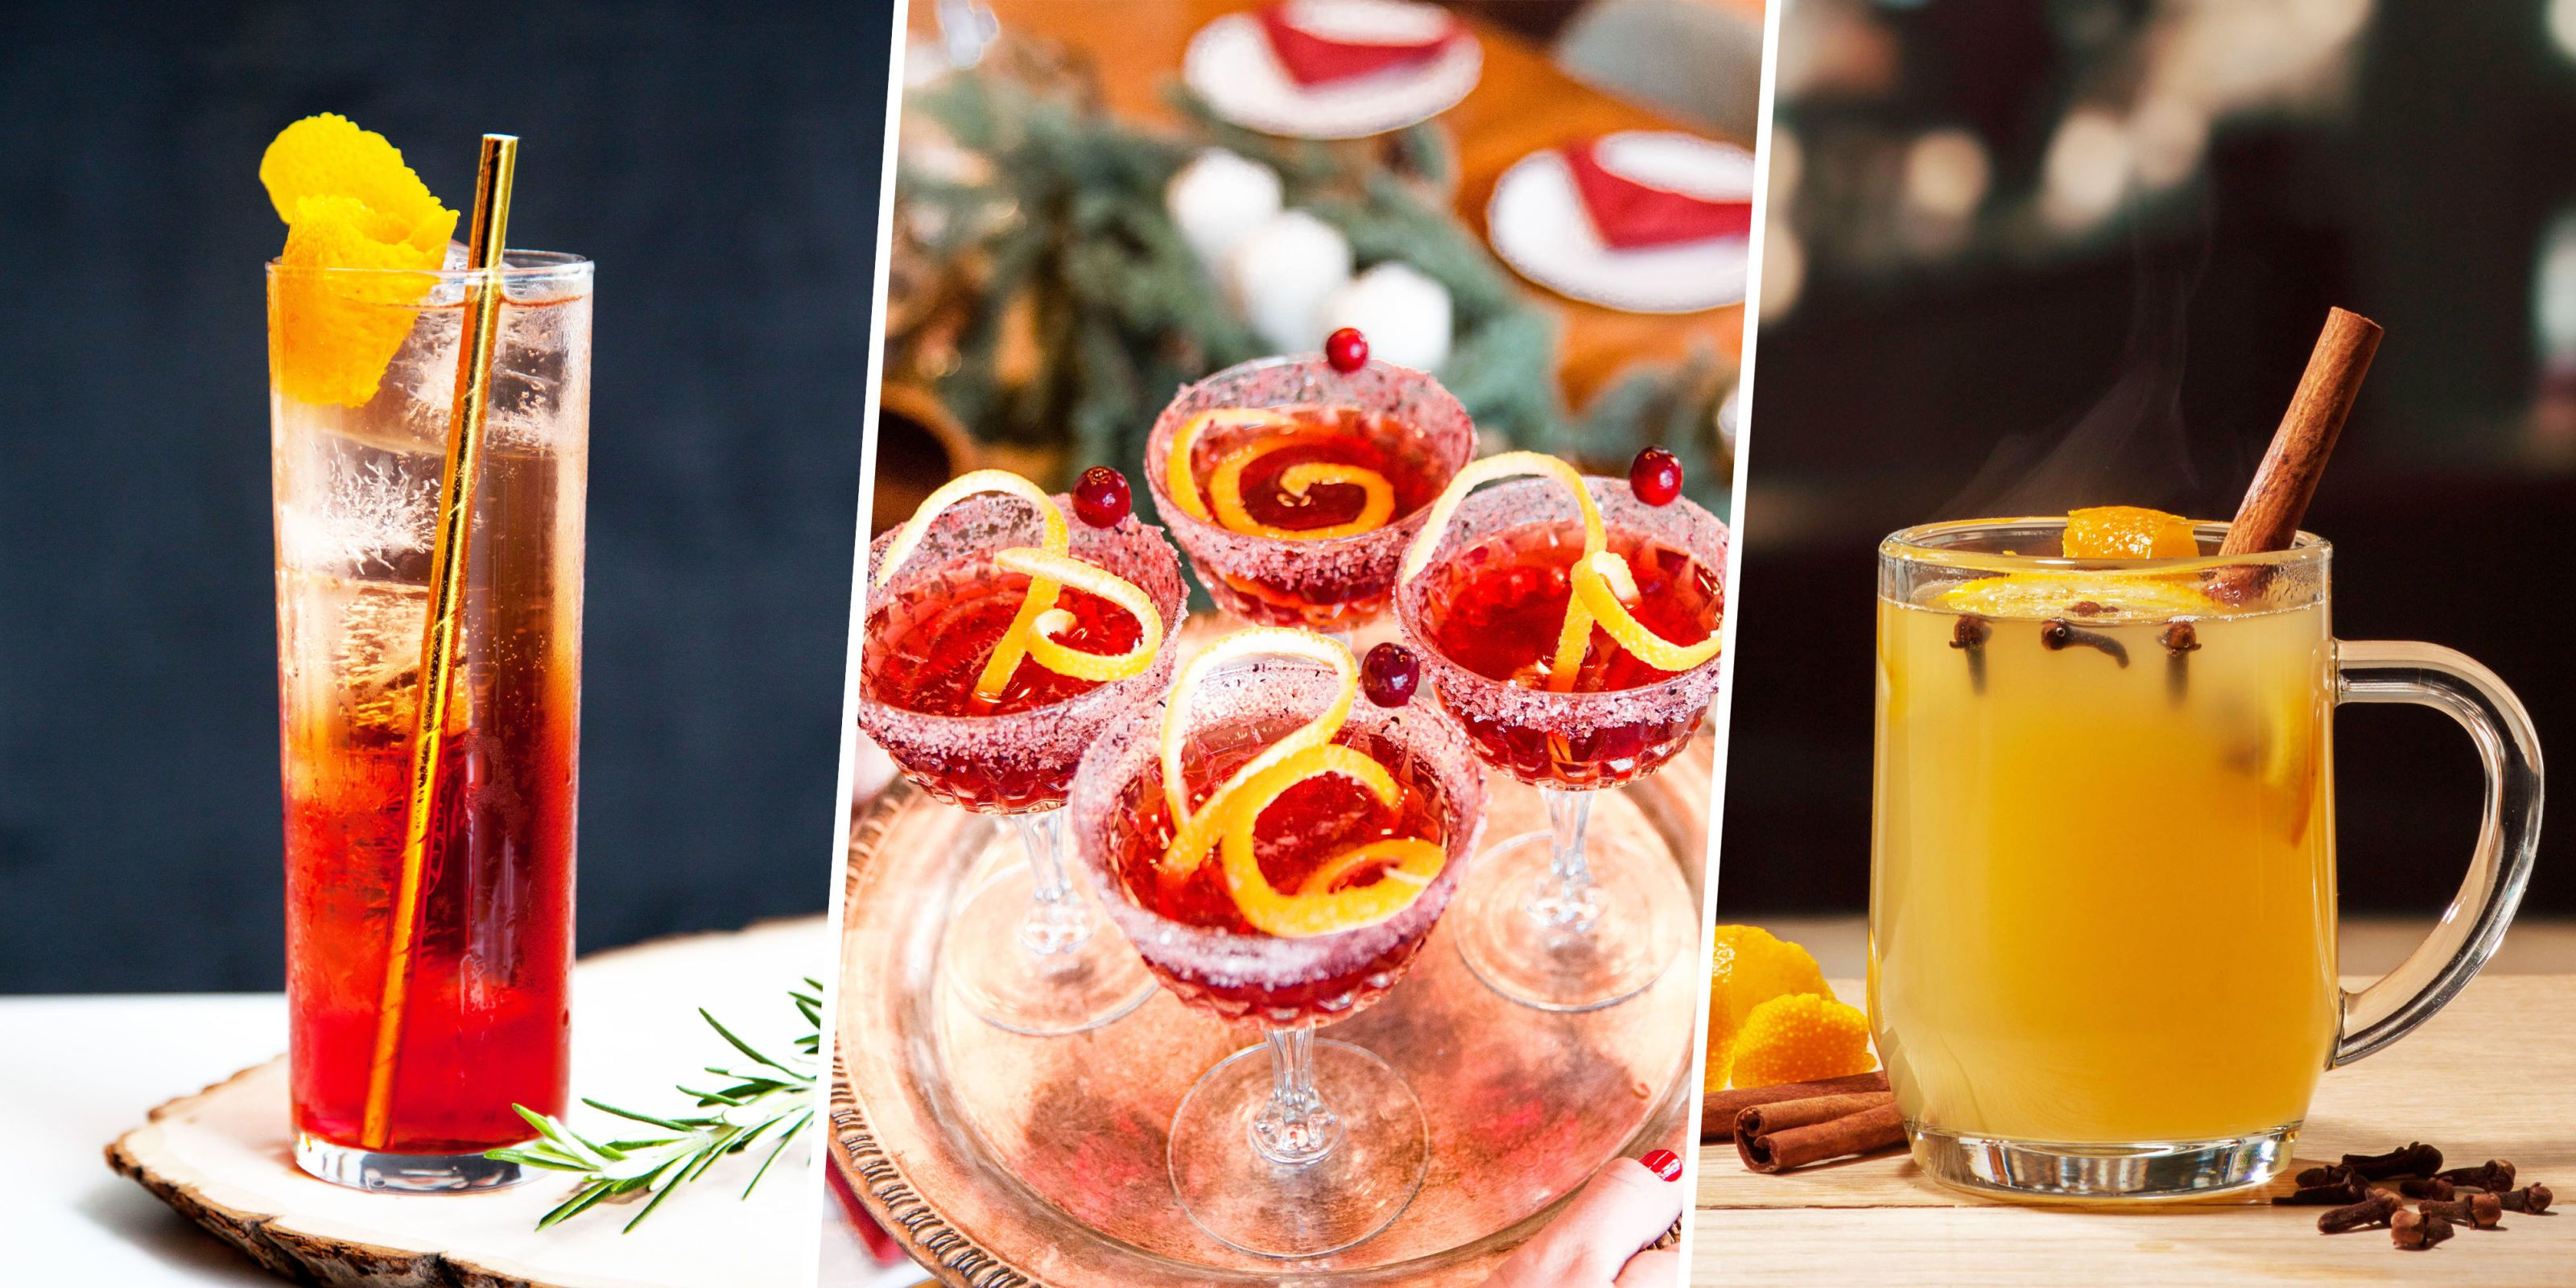 100+ Christmas Cocktails & Holiday Alcoholic Drink Recipes for 2017